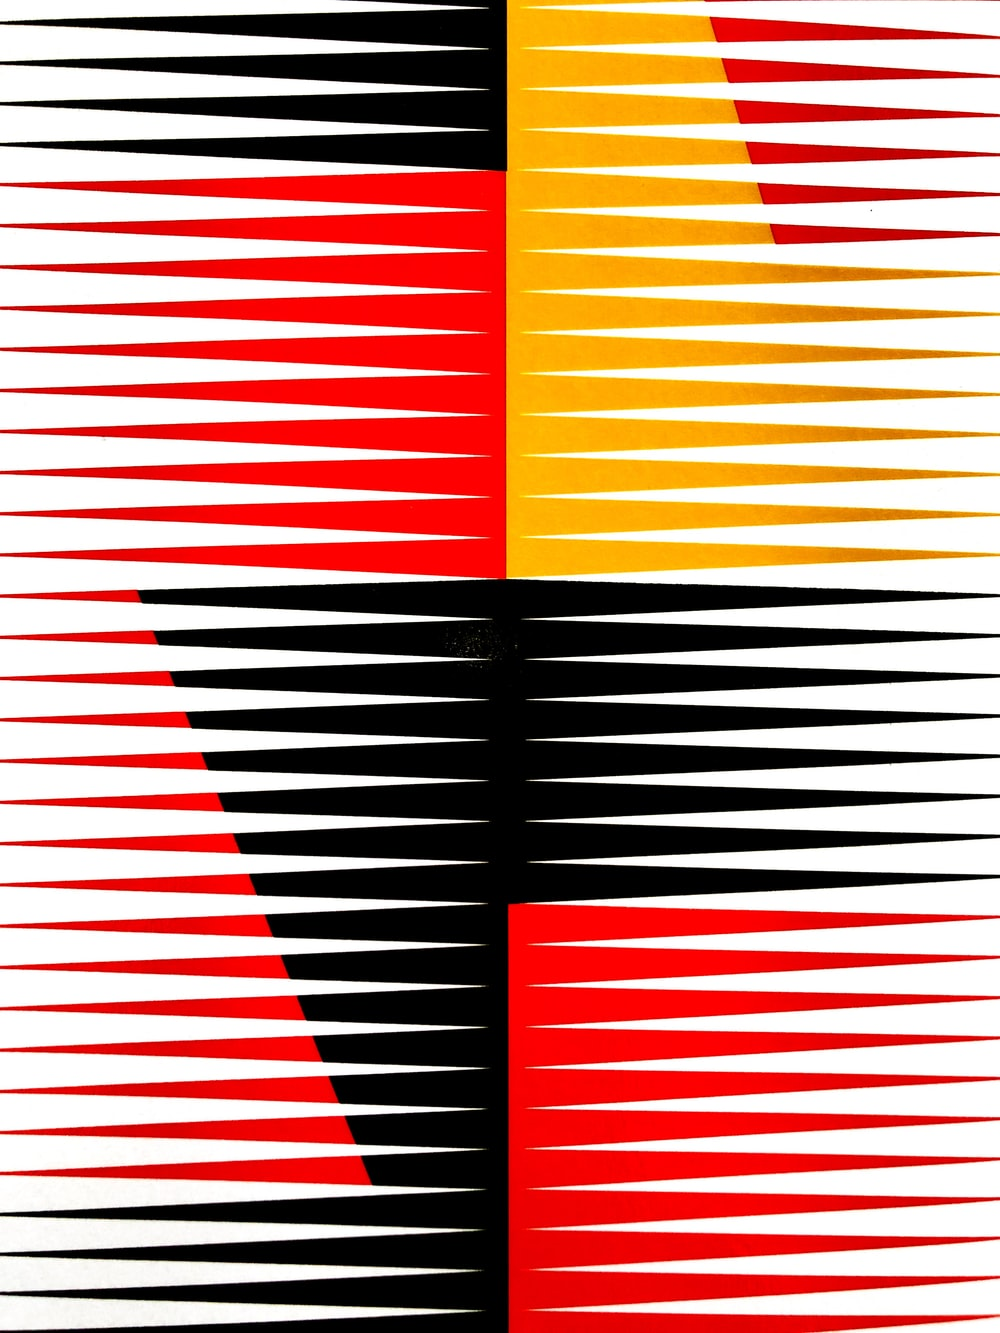 red, black, and yellow artwork